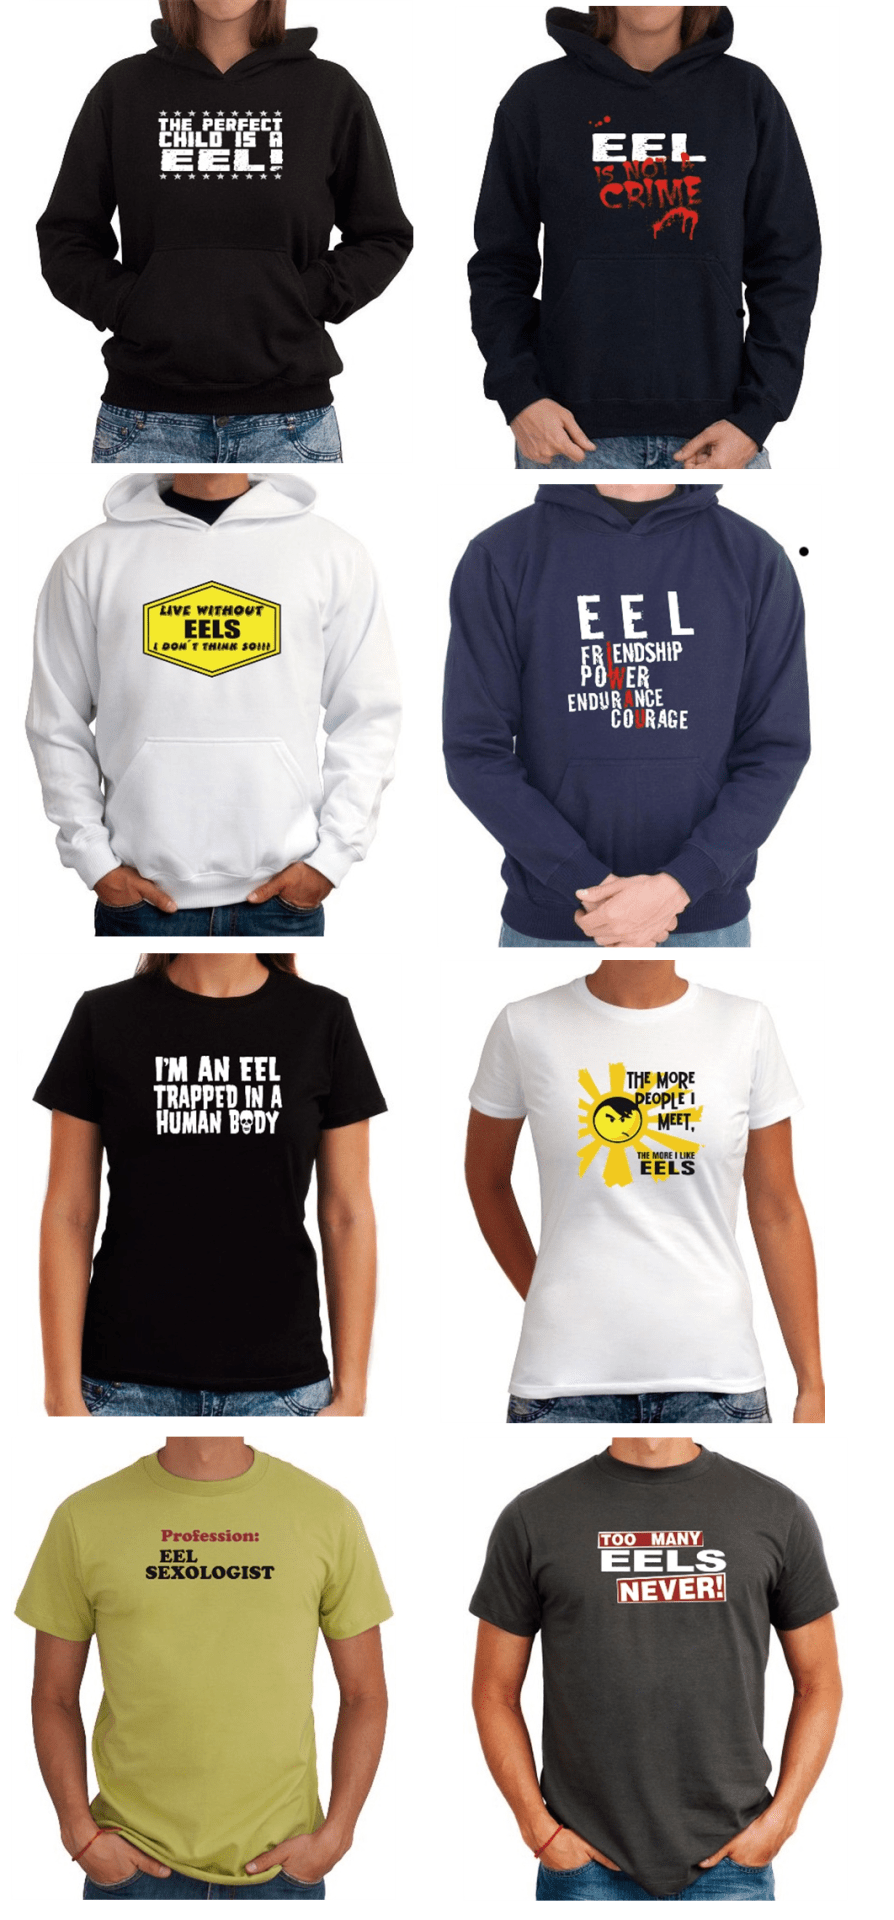 "algopop: ""mothersnewsofficial: "" here are my favorites of the over 60 algorithmically-generated eel-related sportswears i looked at today "" Thank you algopop followers for tagging things #algopop, I'm looking at all your amazing algopop discoveries...."